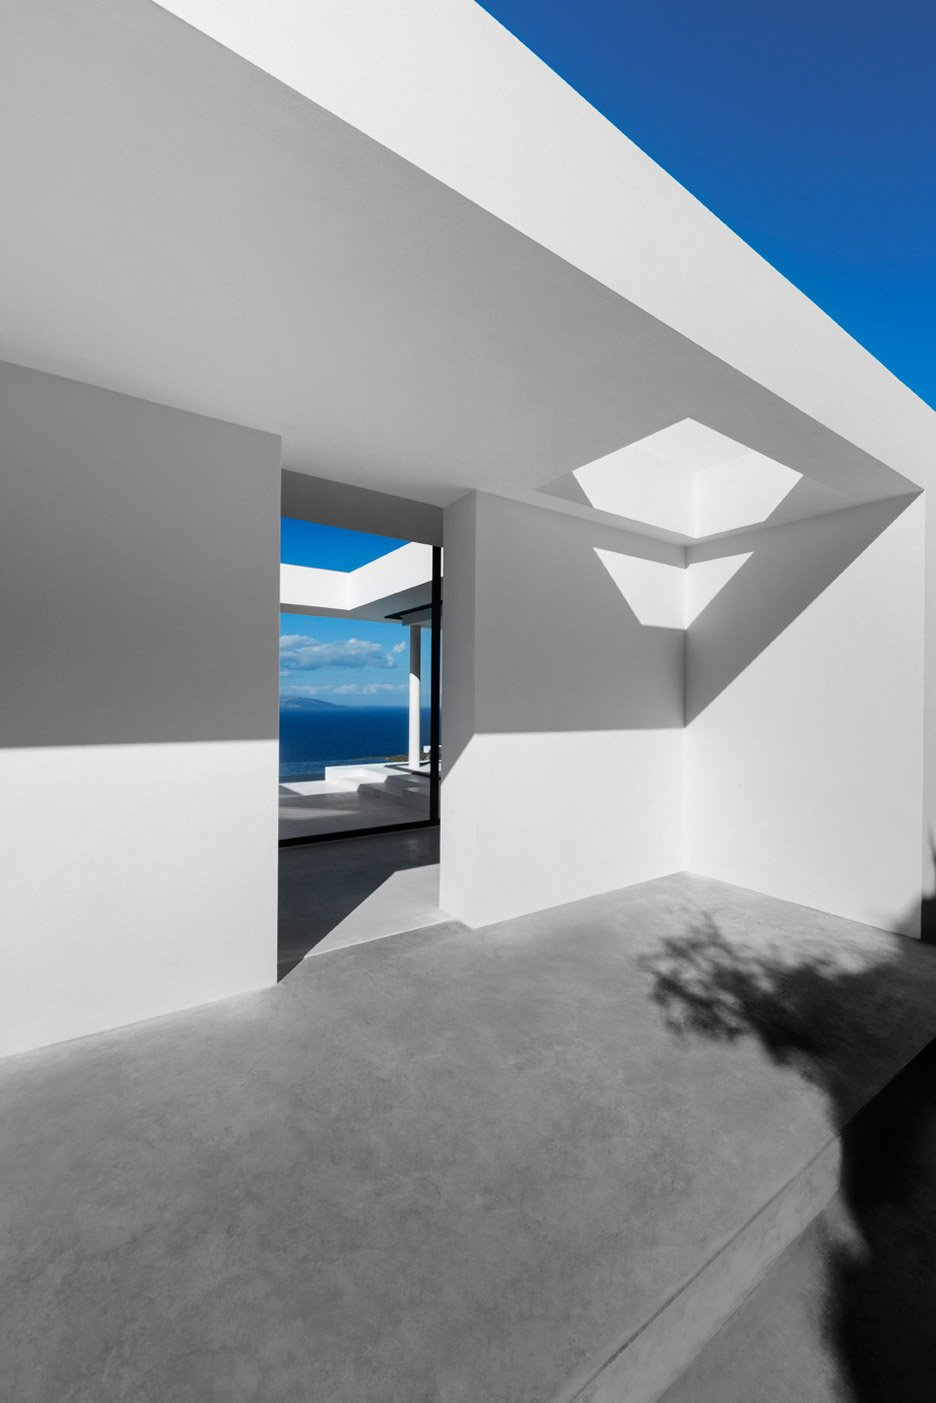 Silver House by Olivier Dwek, Greece